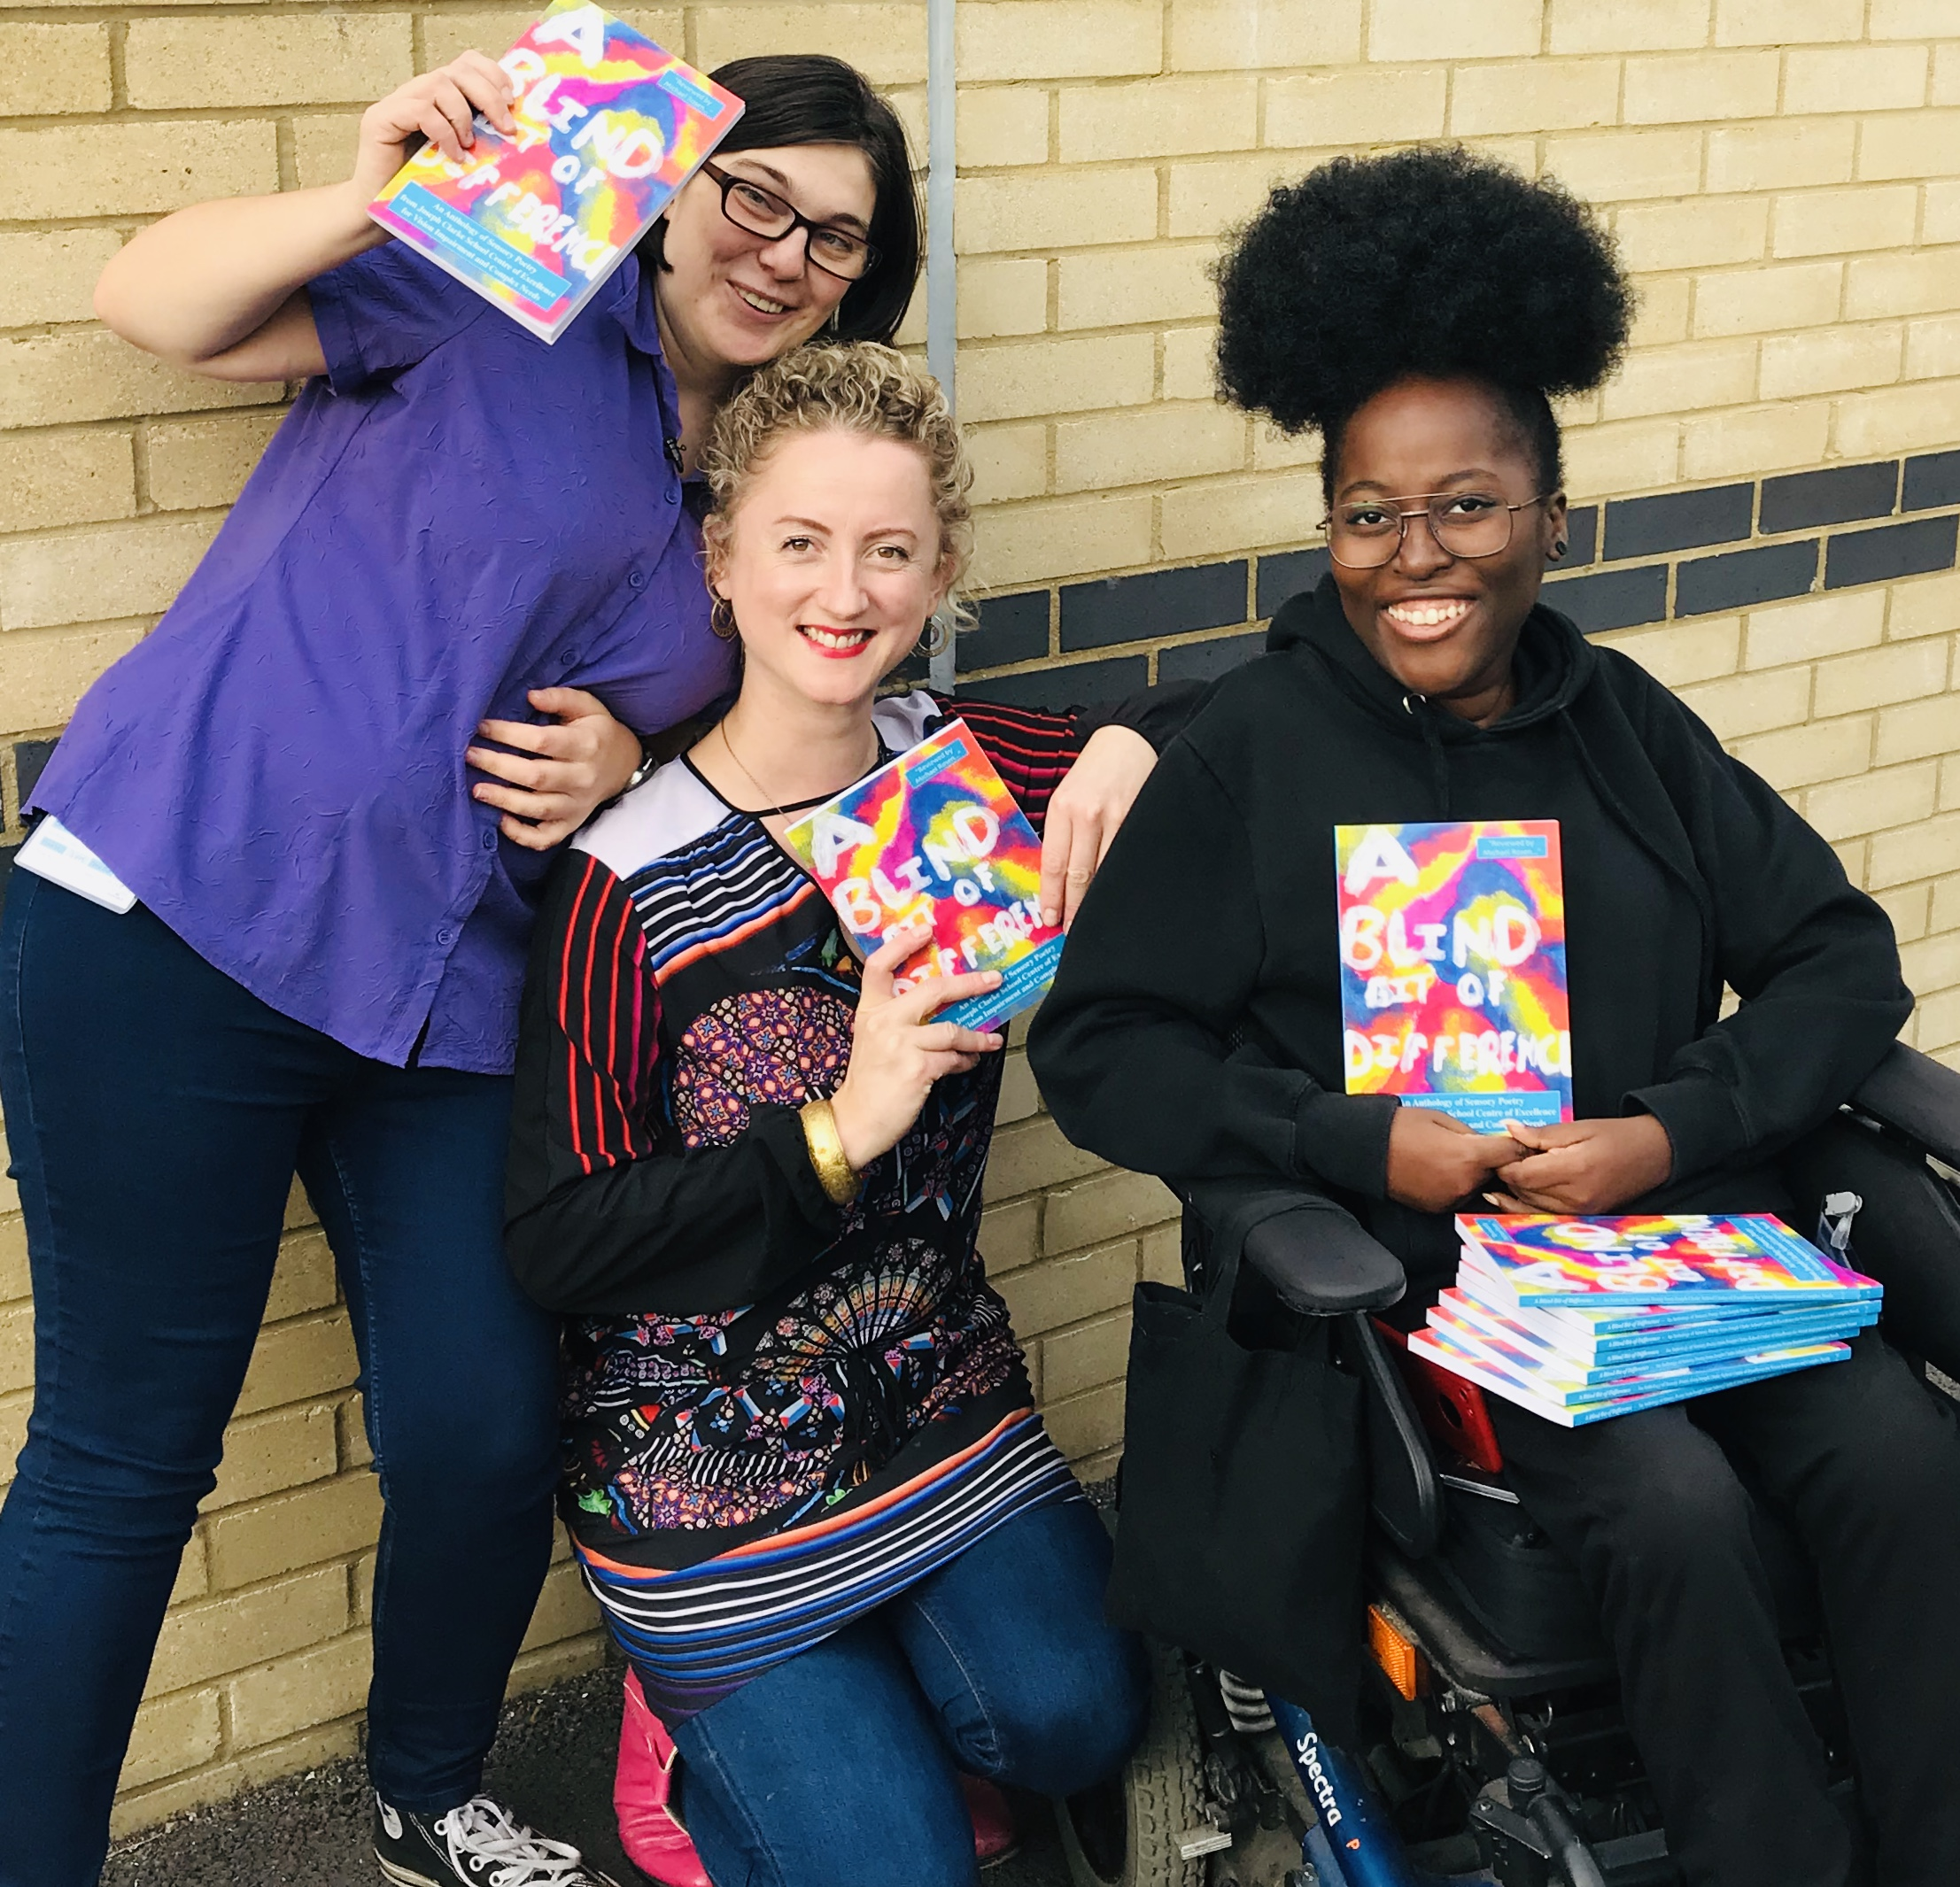 Image Description: photograph  of featured artist Zara Jayne, Project manager Amy Neilson Smith and proud wheelchair user and artist Miss Jaqui pose with copies of A Blind Bit of Difference in front of a beige wall